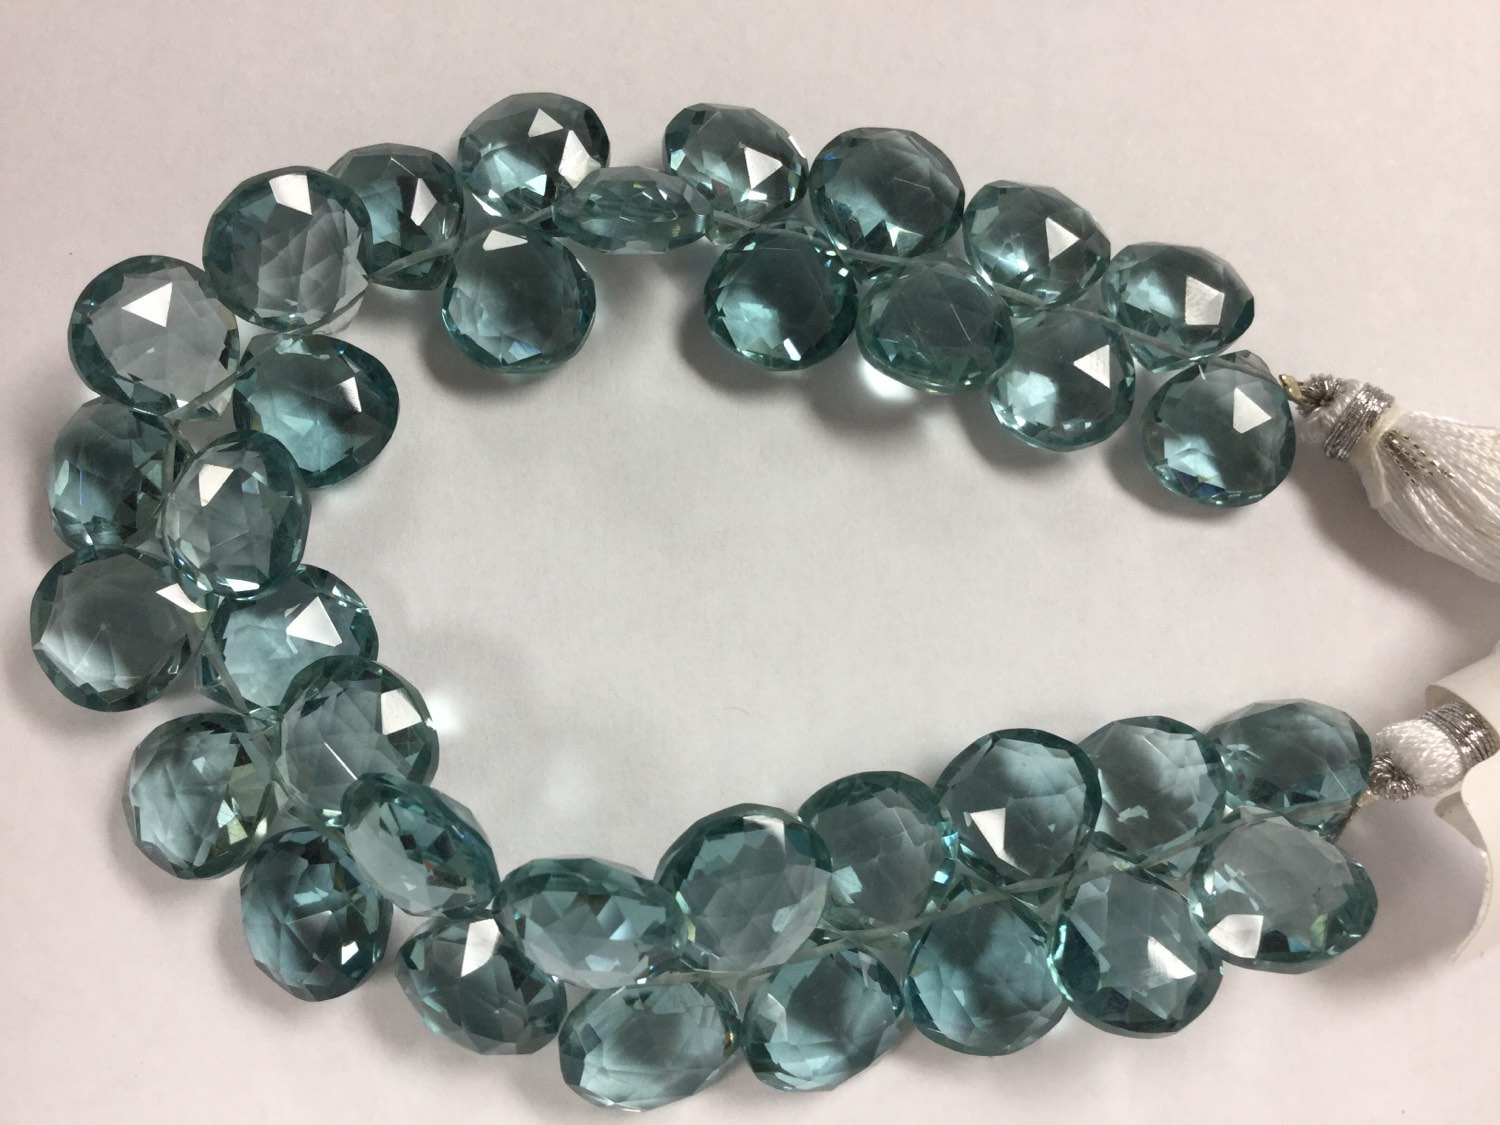 Aquamarine Hydro Quartz Hearts Faceted